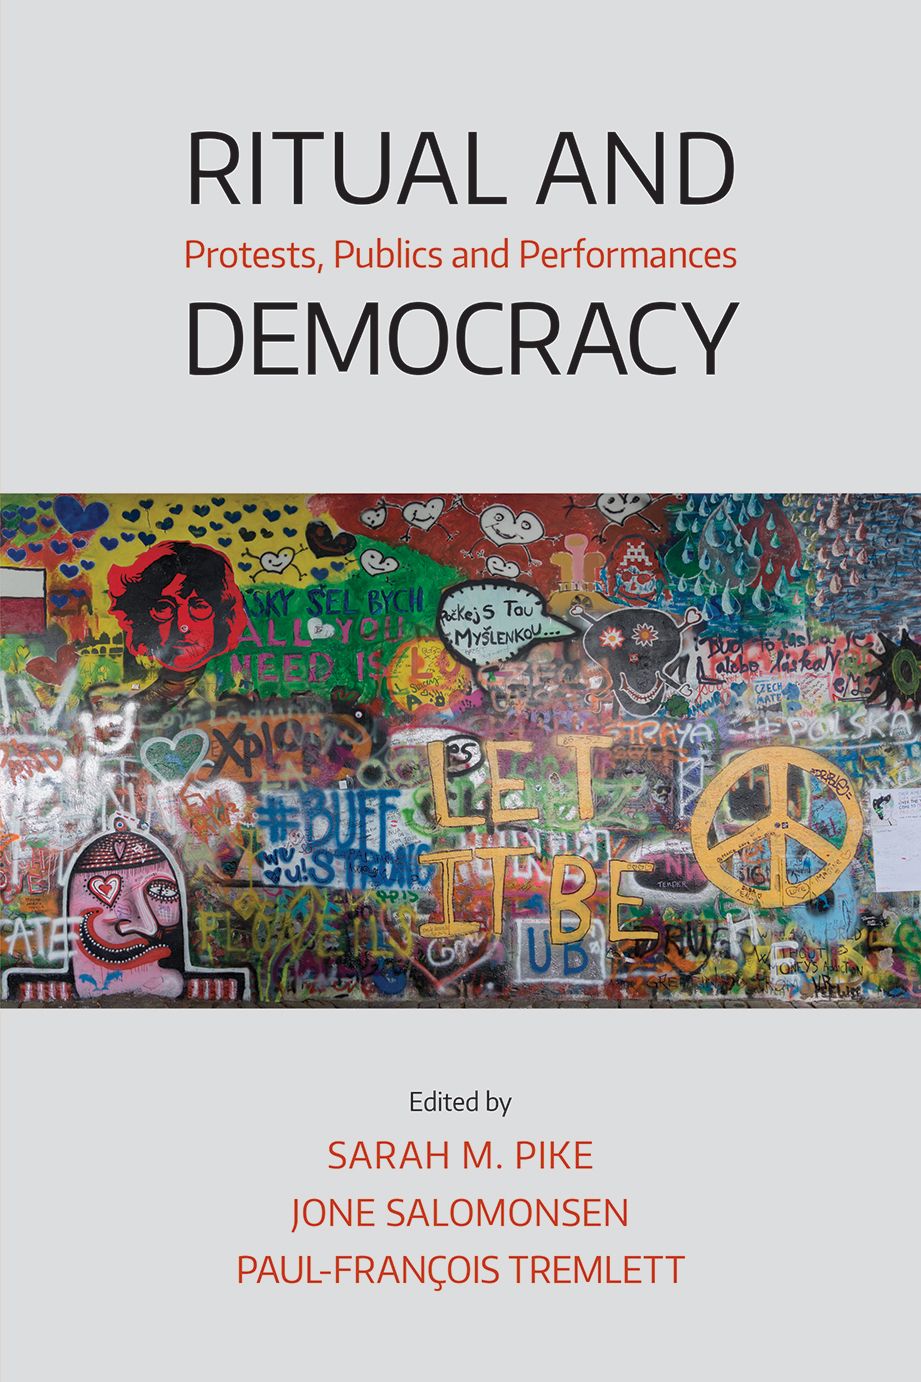 Ritual and Democracy - Protests, Publics and Performances - Sarah M. Pike